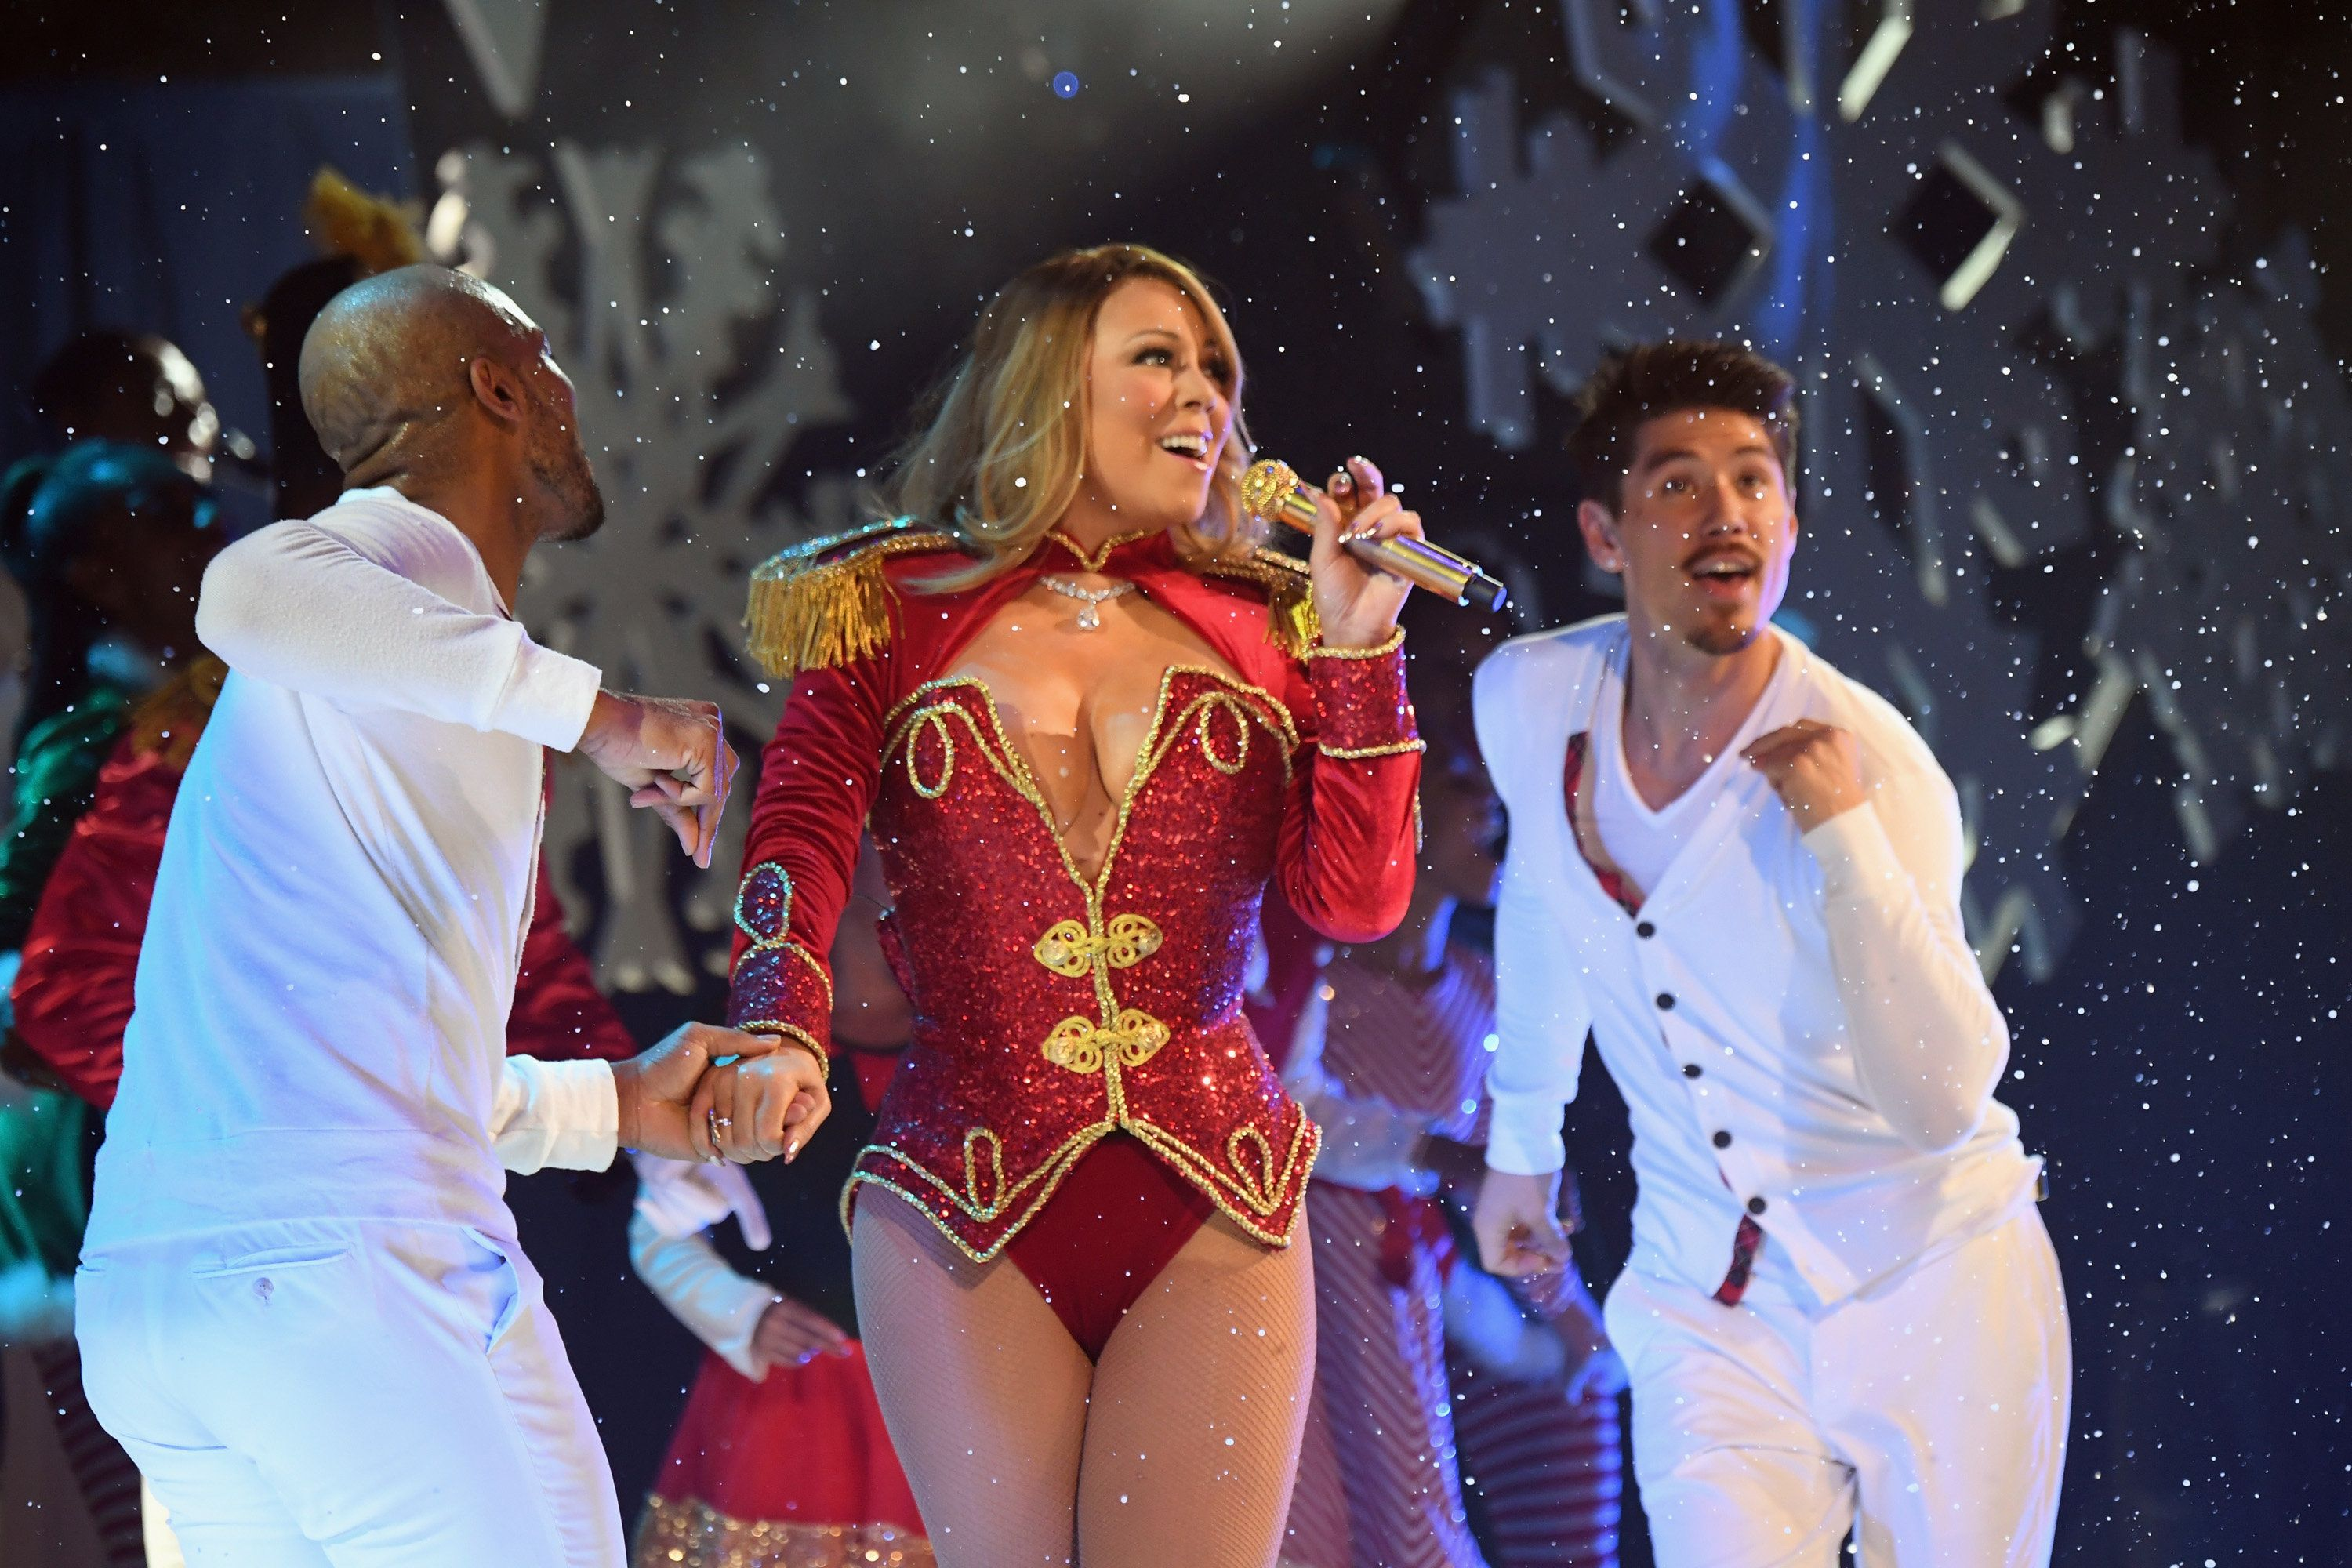 Mariah Carey performing in New York last December.